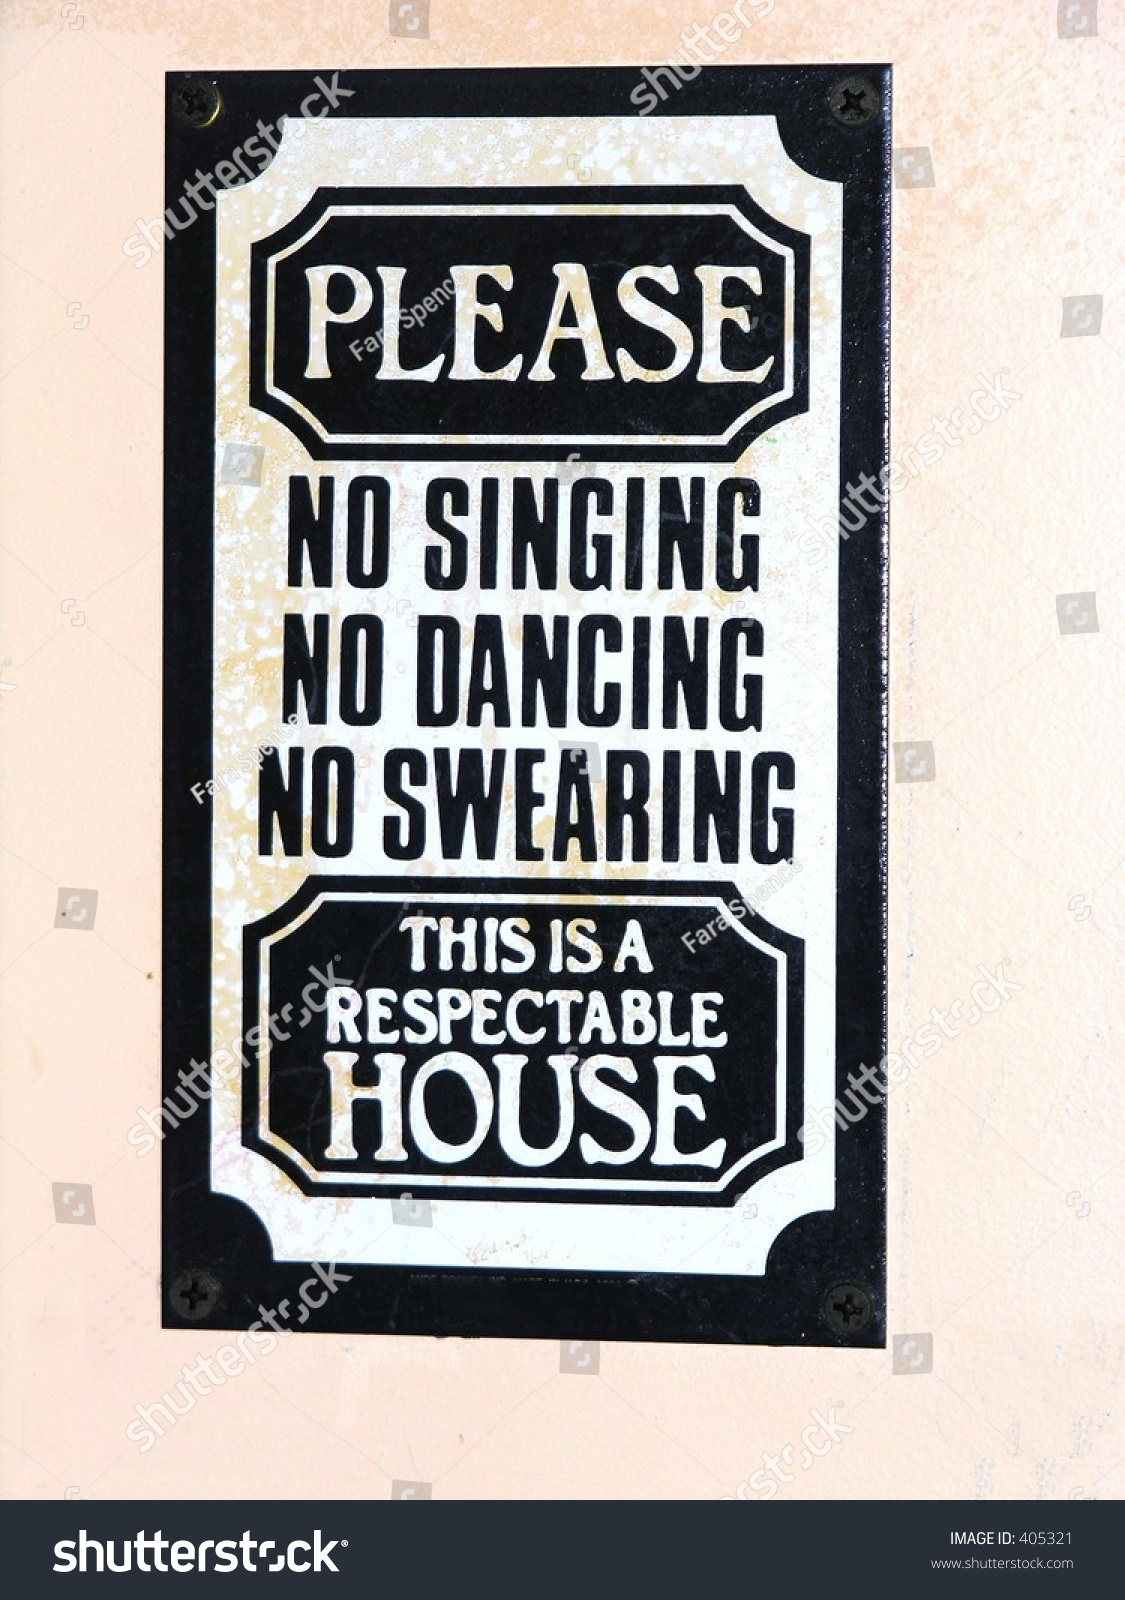 Sign Seen On Wall:Please No Singing, No Dancing, No ...